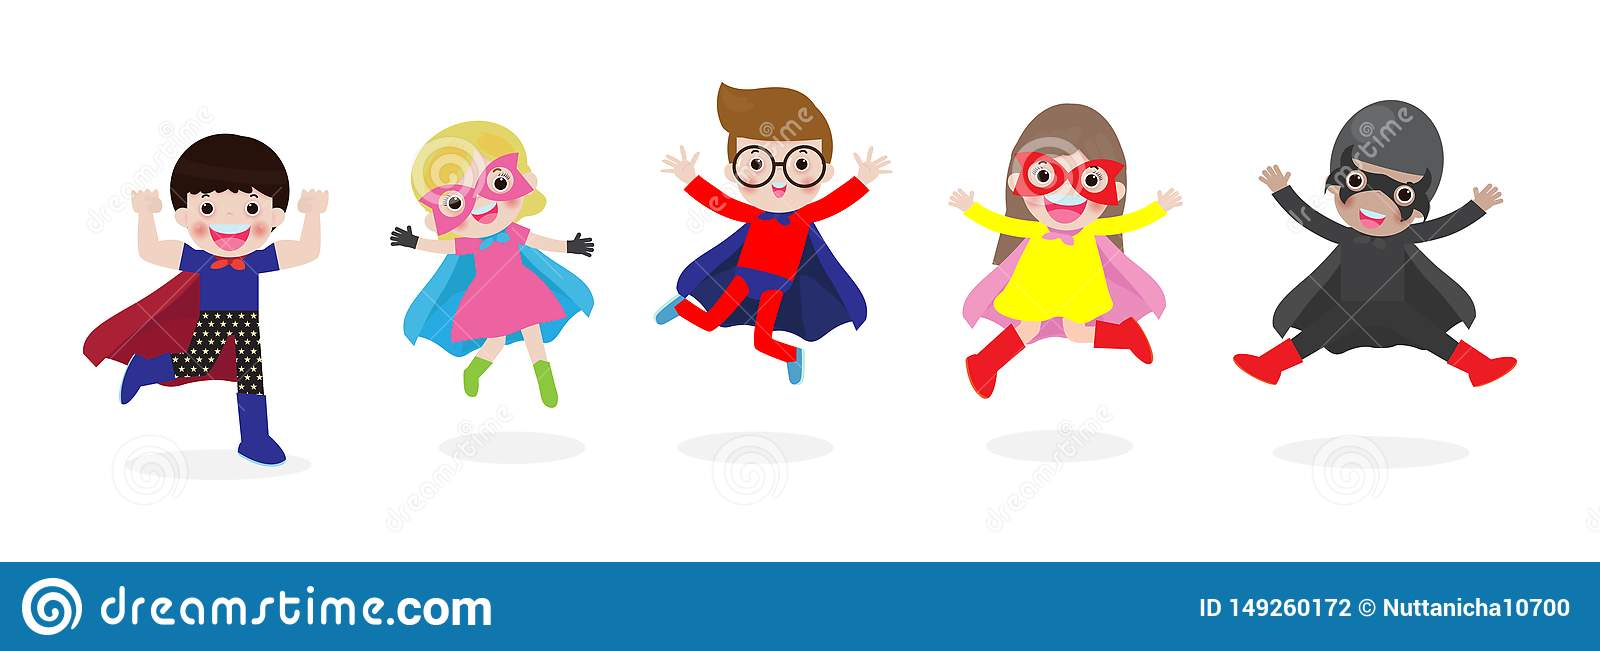 Cartoon set of Kids Super heroes wearing comics costumes. children in Superhero costume characters isolated on white background, v